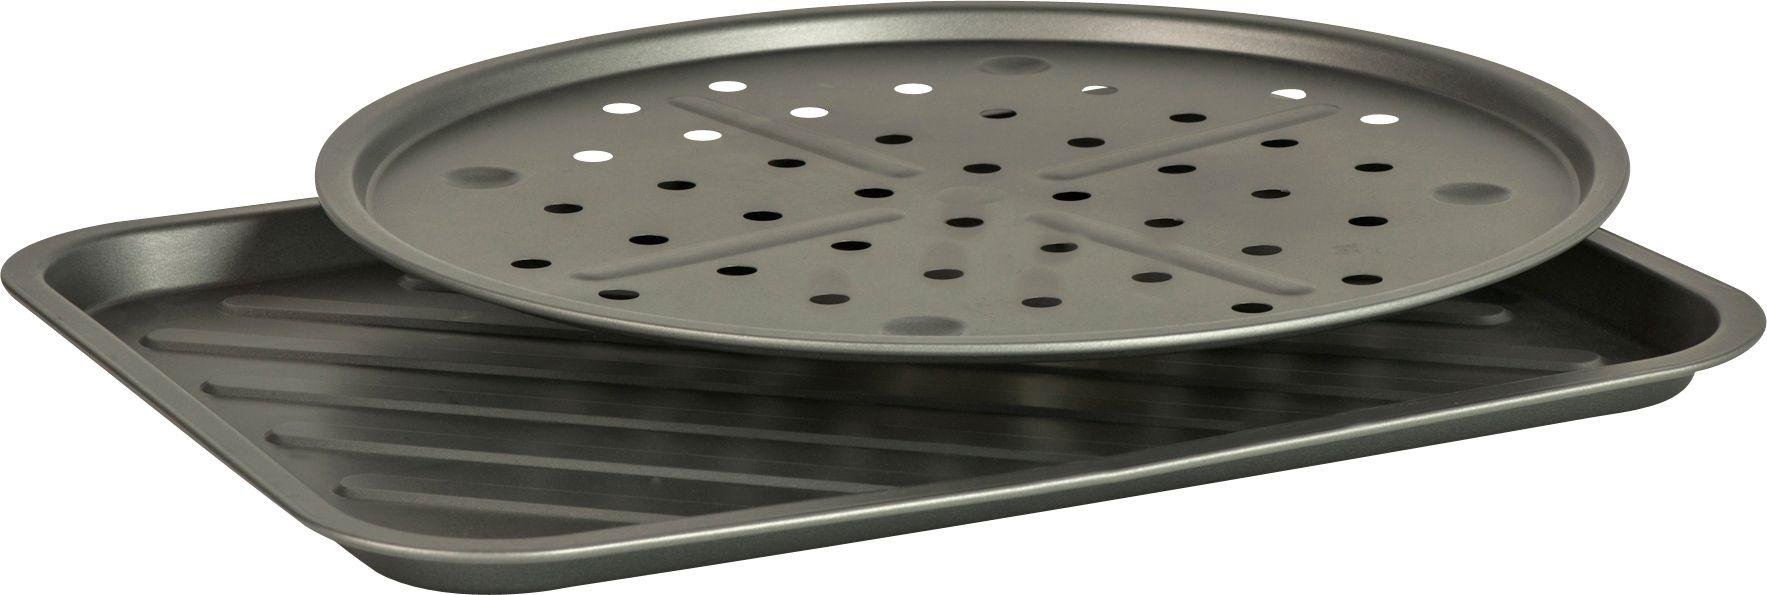 Image of HOME - 2 Piece Non-Stick Pizza Pan and Oven Chip Tray Set